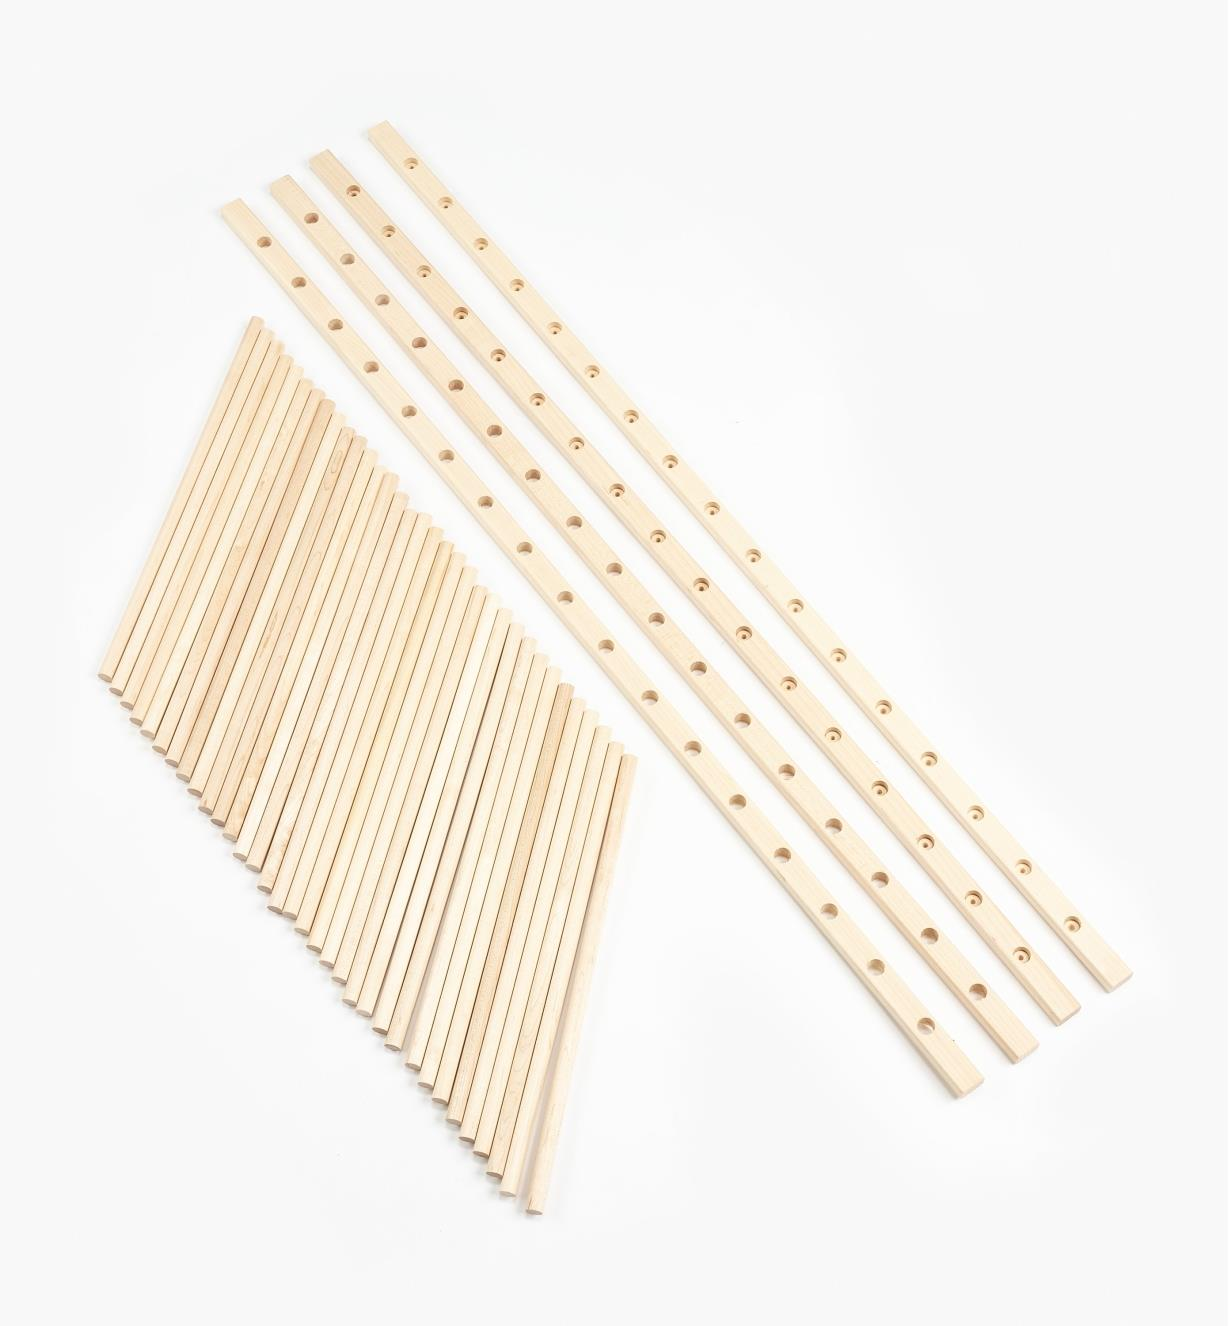 12K7470 - Plate Rack Kit, Maple